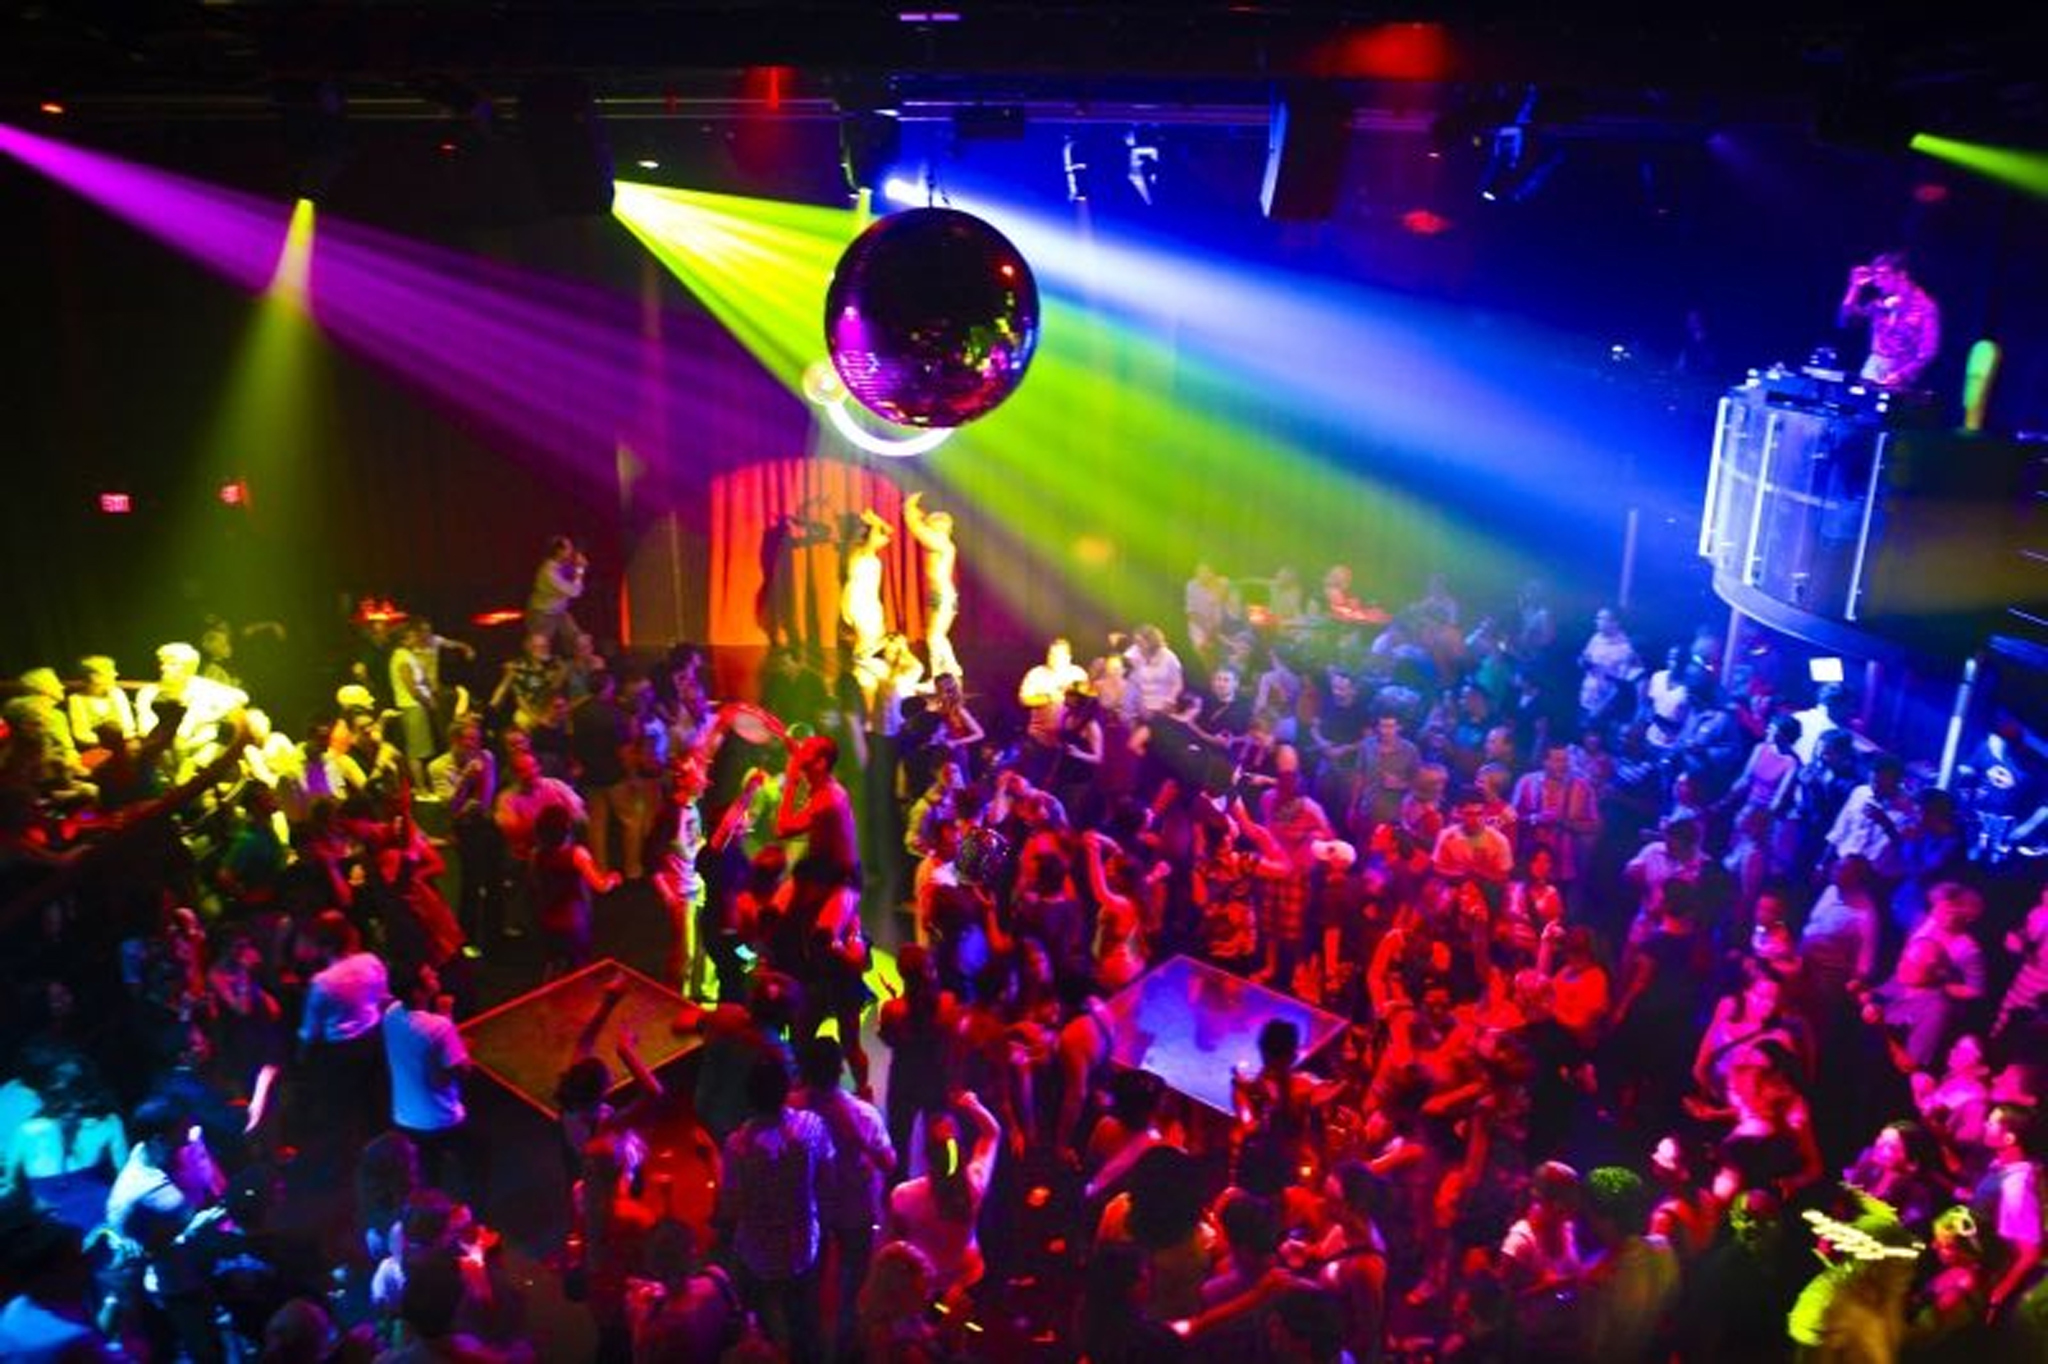 Win VIP tickets to 'The Donkey Show' and one night's stay in a four-star hotel